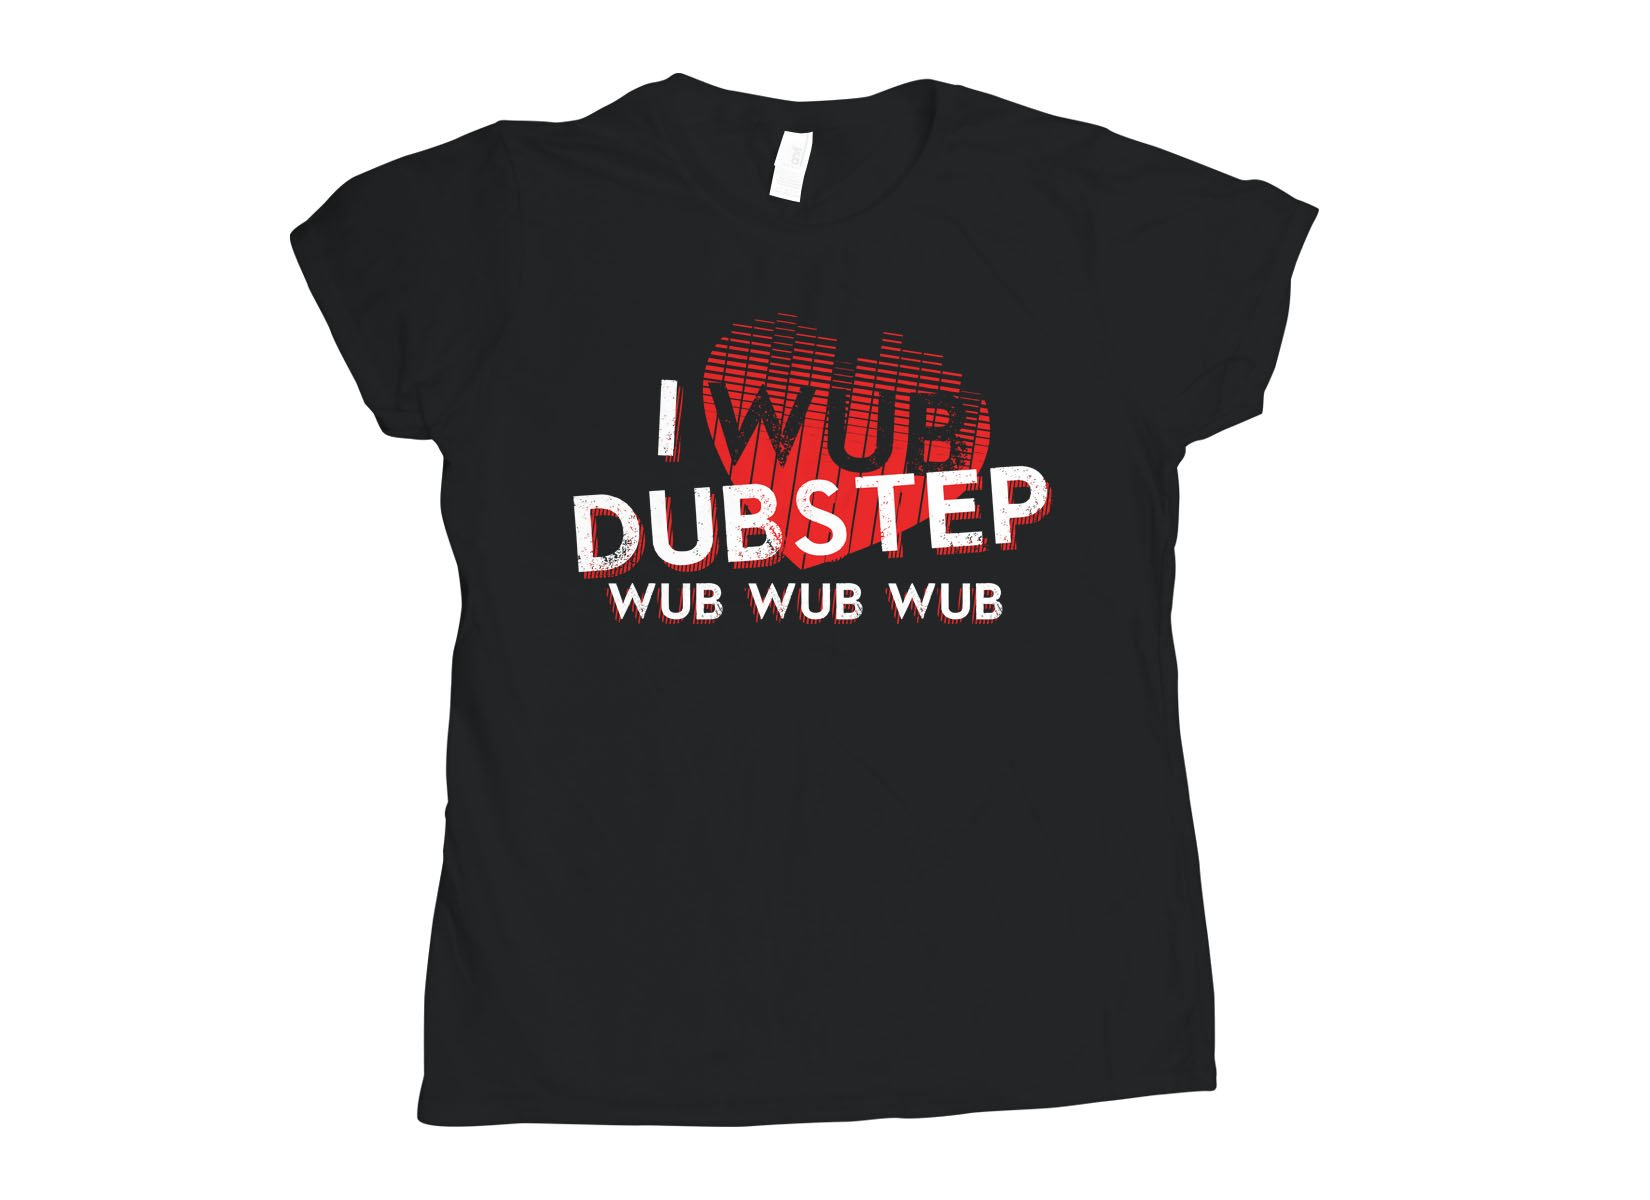 I Wub Dubstep on Womens T-Shirt